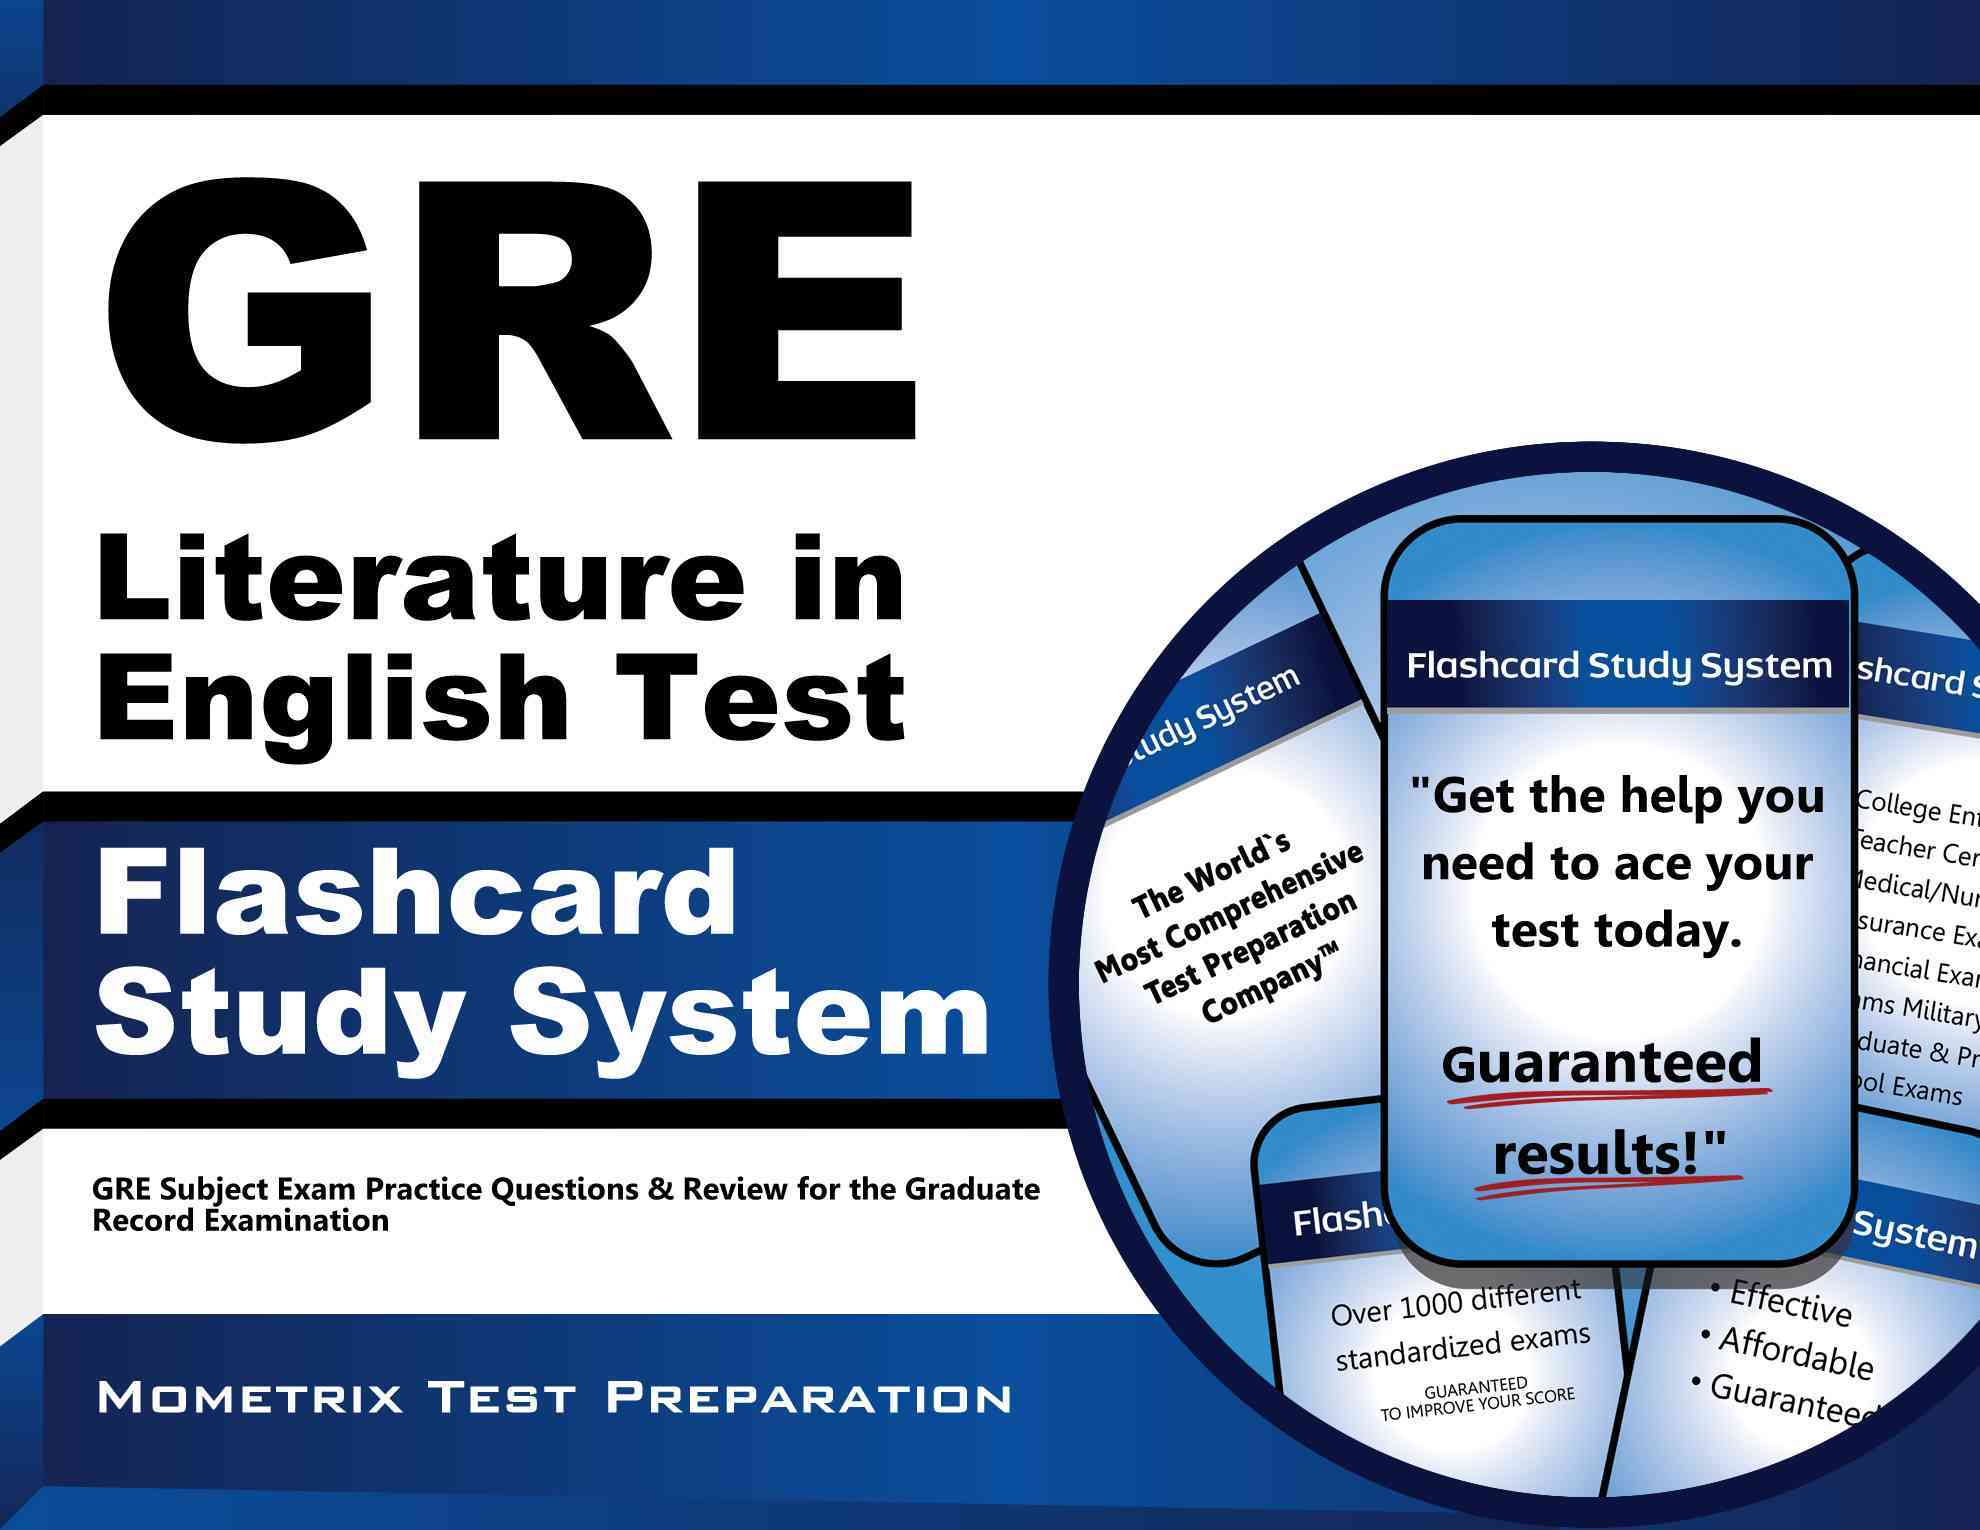 Gre Literature in English Test Flashcard Study System By Gre Subject Exam Secrets Team (EDT)